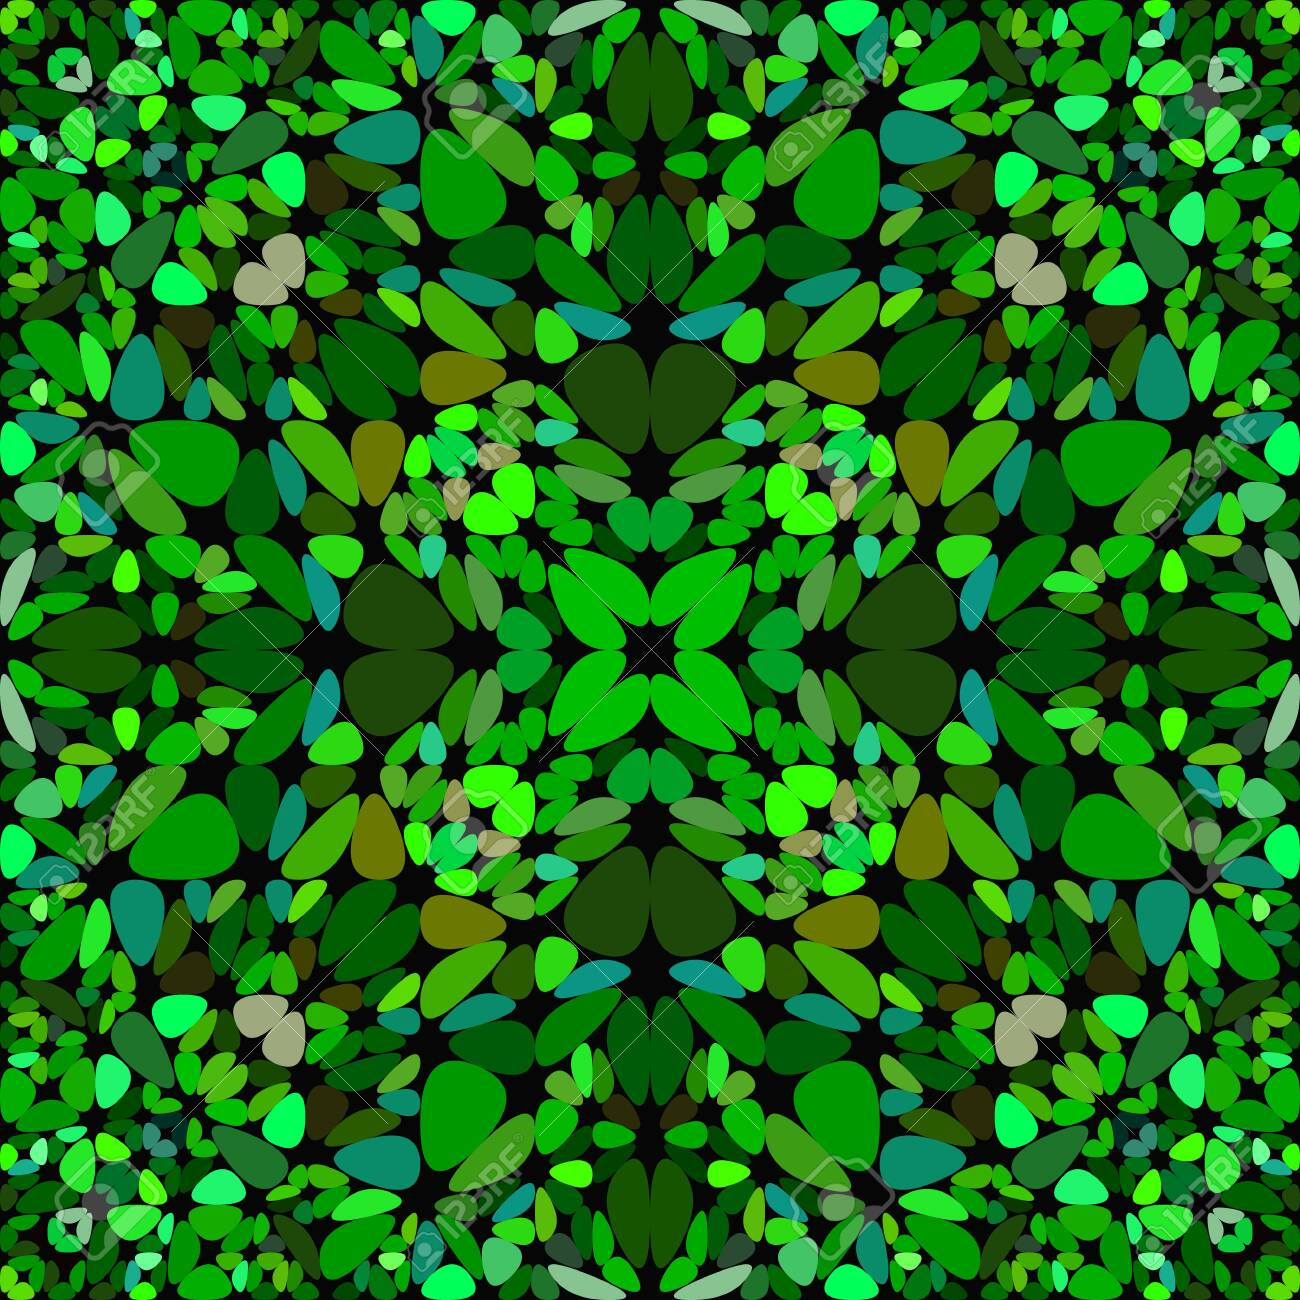 Green Abstract Repeating Floral Ornate Pattern Wallpaper Geometric Vector Graphic Design